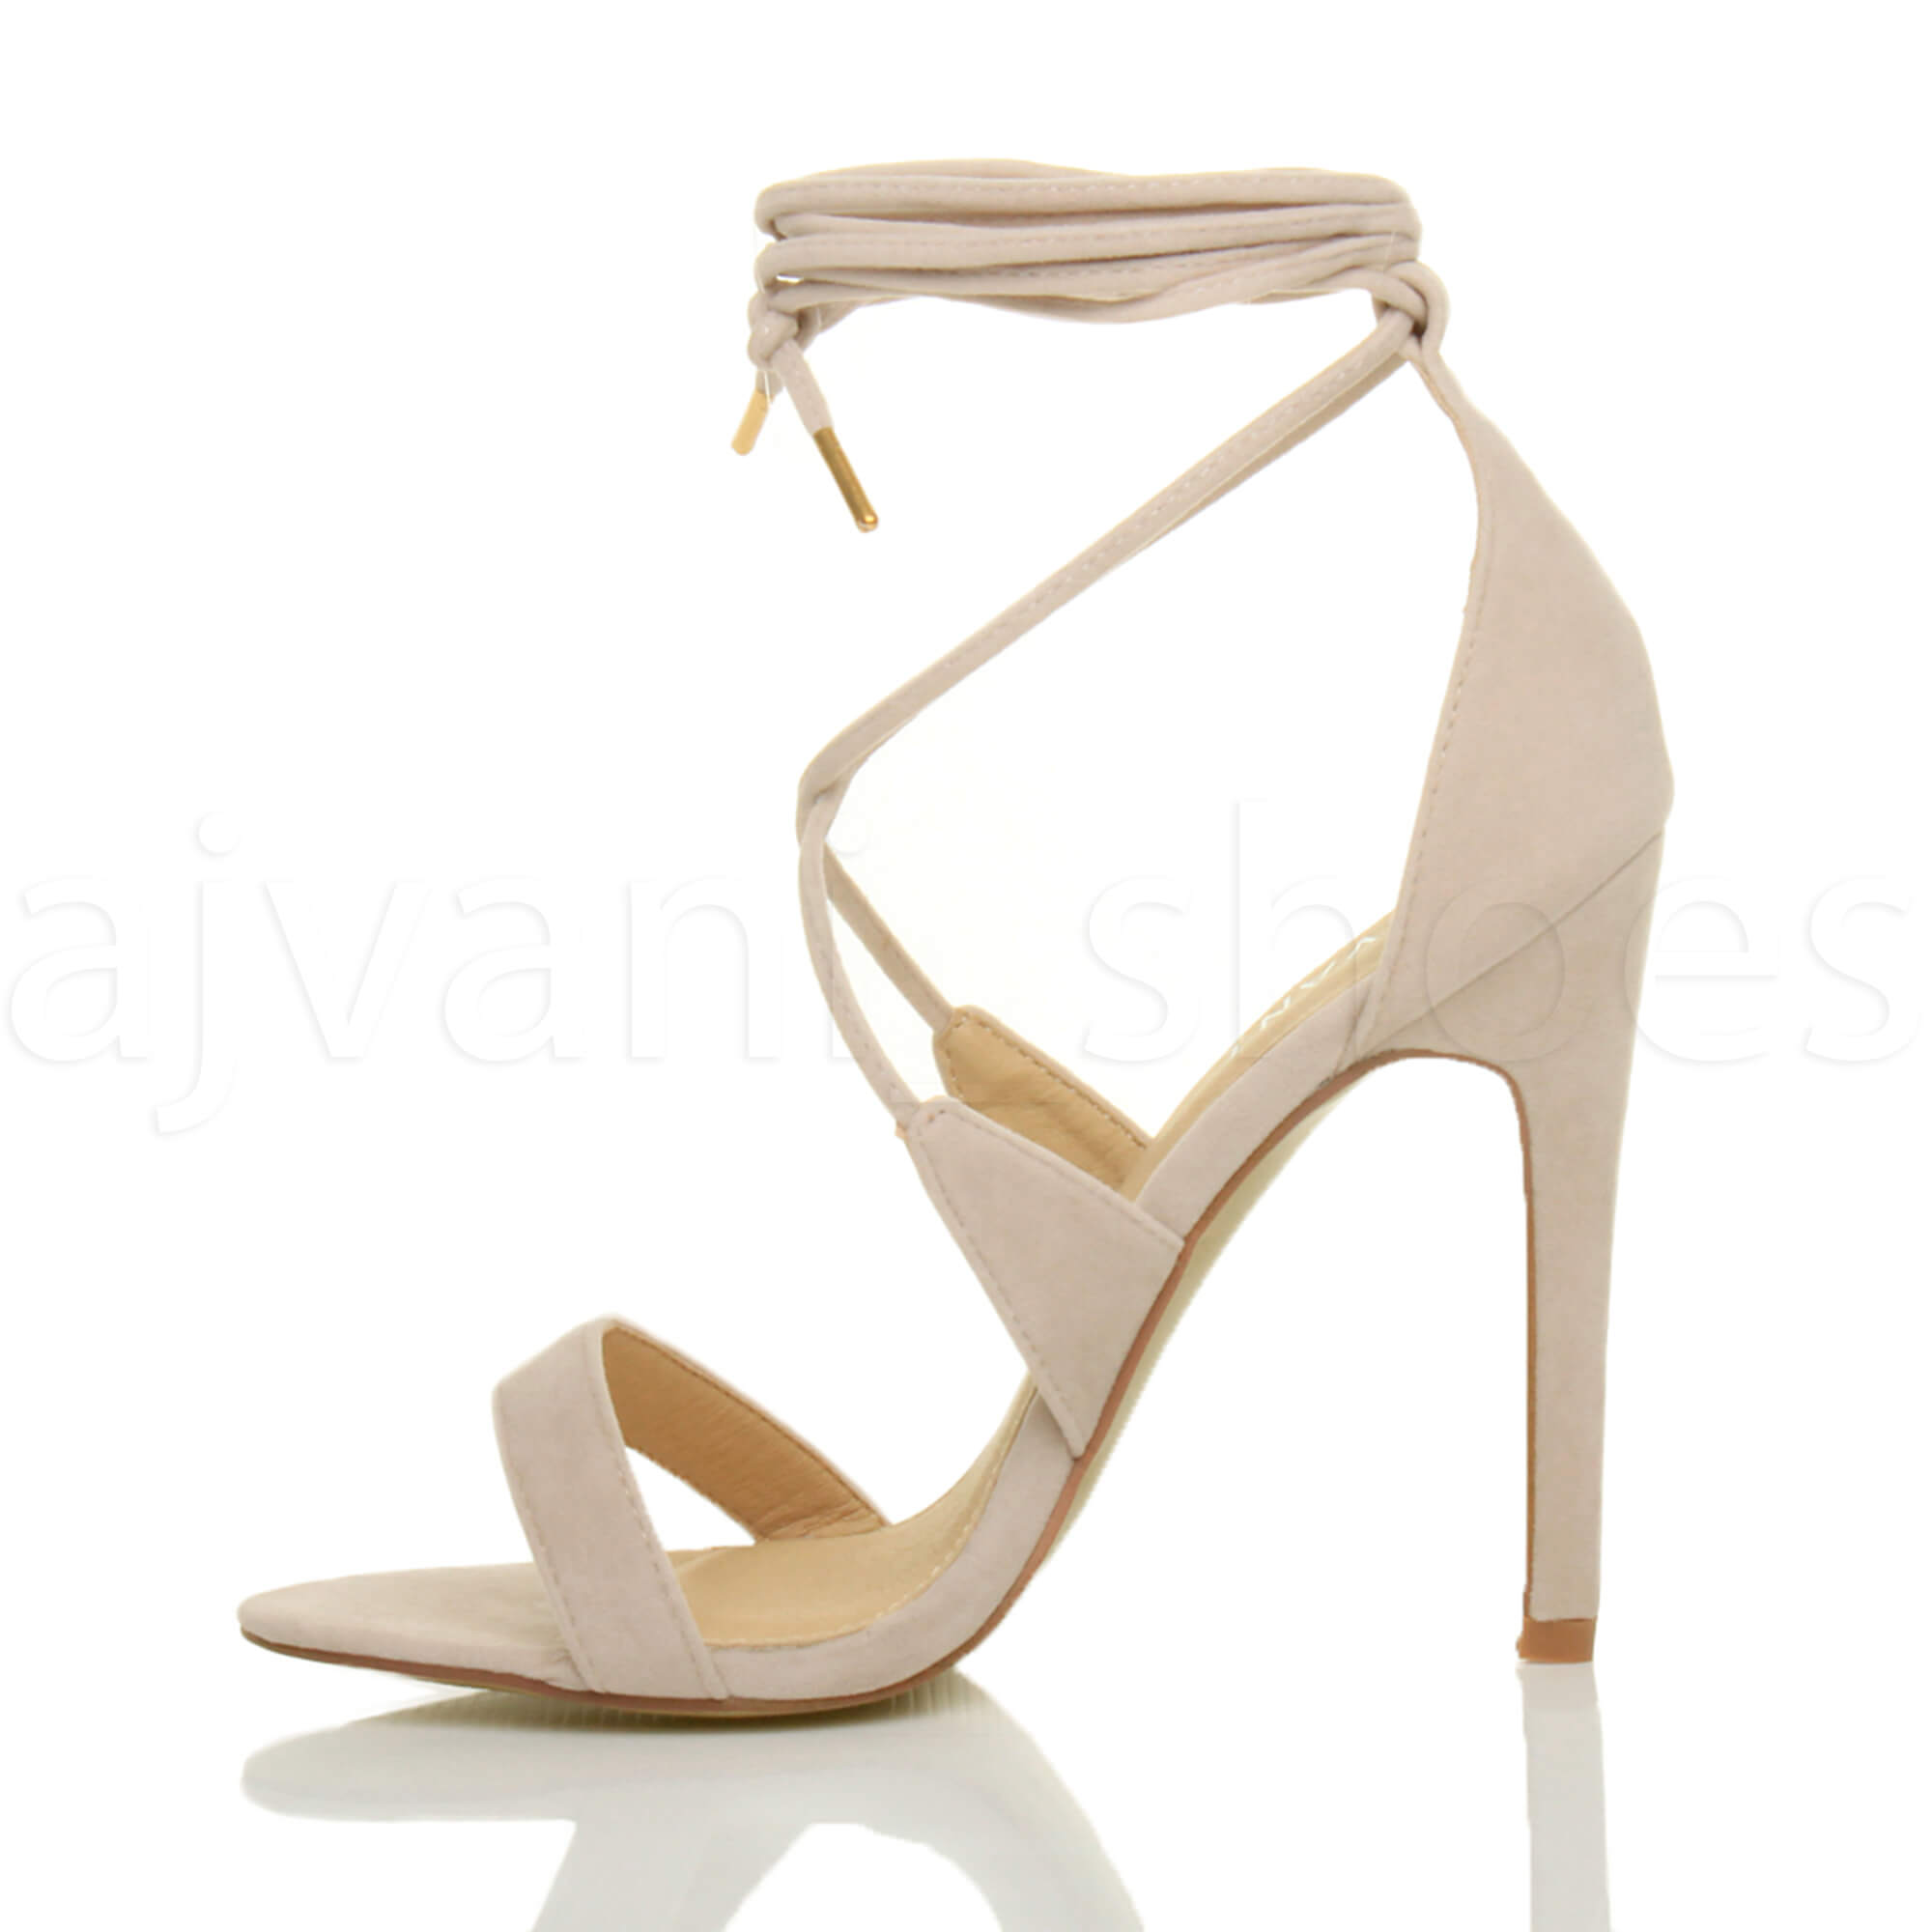 WOMENS-LADIES-HIGH-HEEL-BARELY-THERE-STRAPPY-LACE-TIE-UP-SANDALS-SHOES-SIZE thumbnail 40